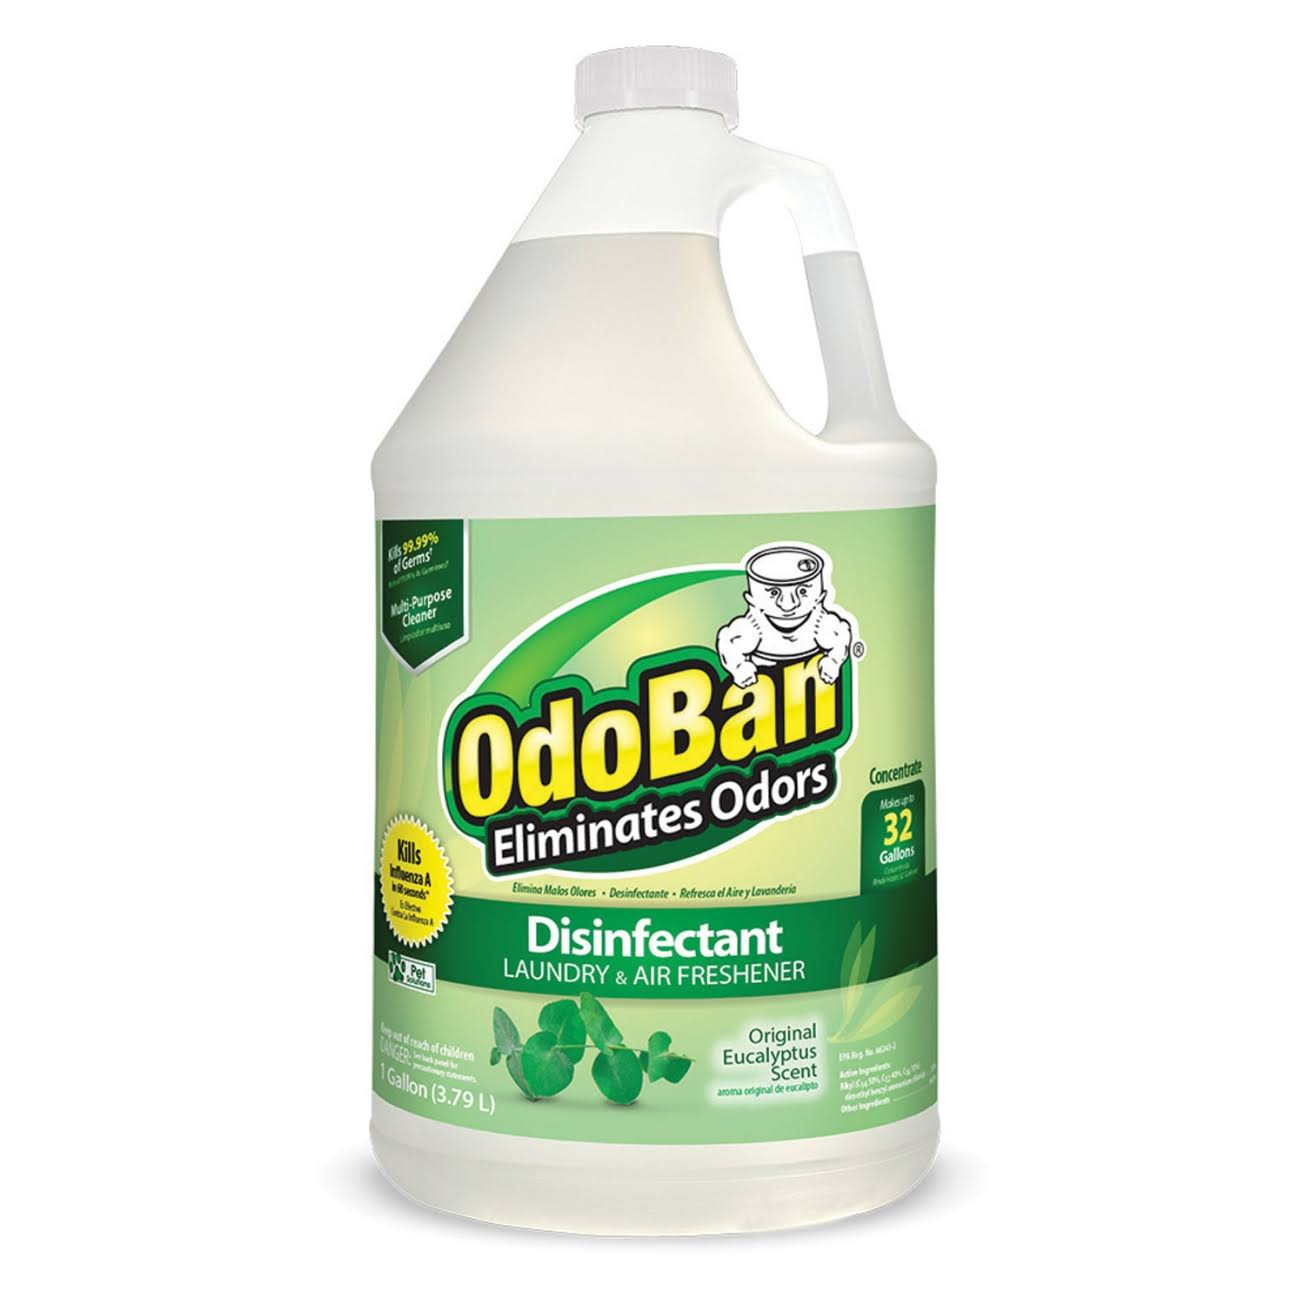 Odoban Odor Eliminator and Disinfectant - Eucalyptus Scent, 1 Gallon